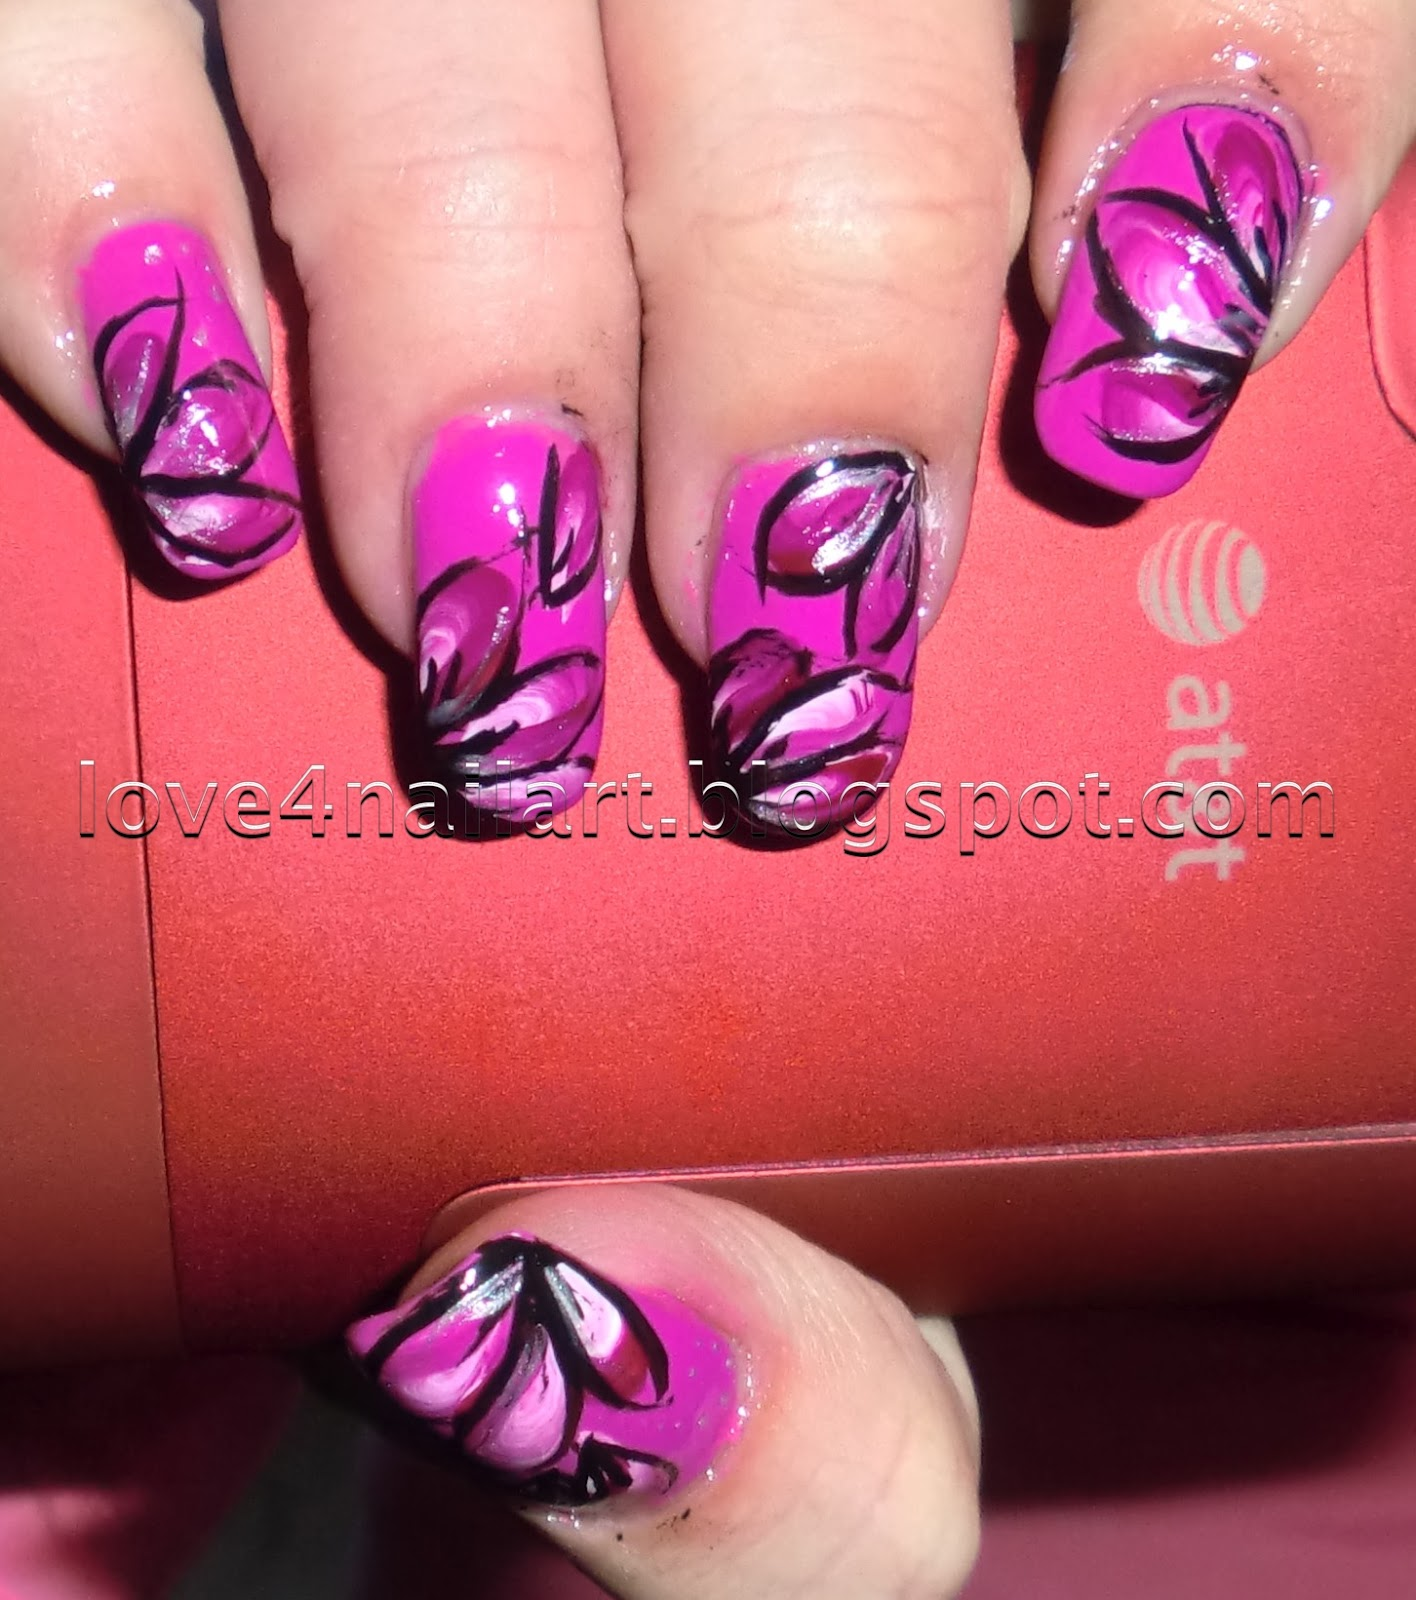 Love4nailart Purplepink Flower Nail Art